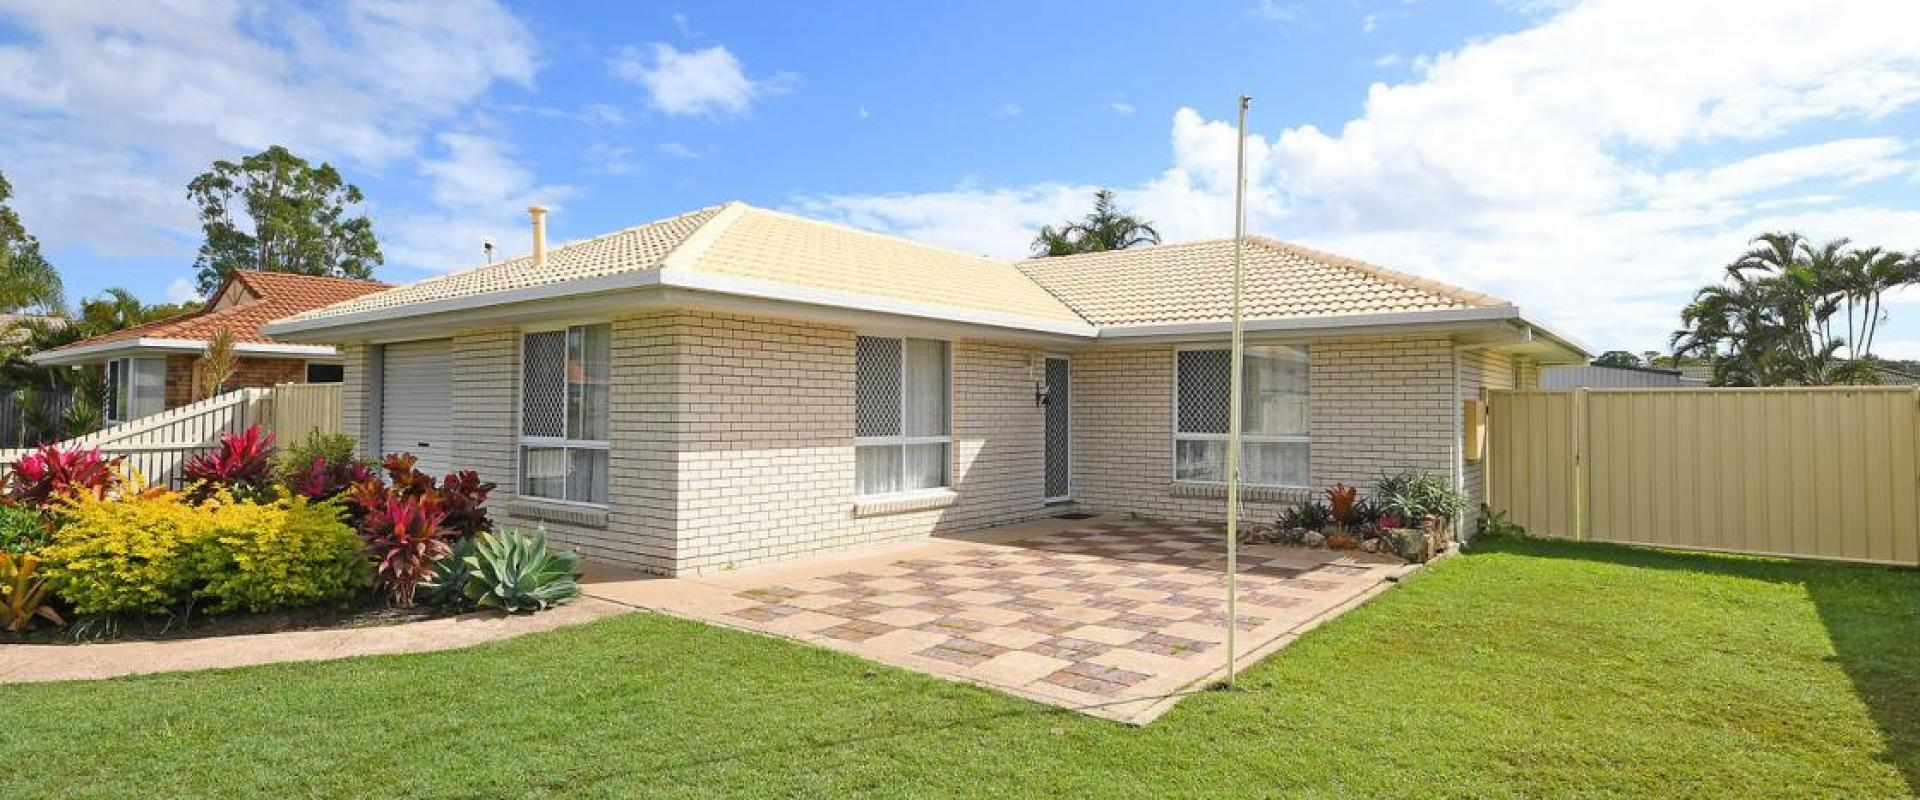 KAWUNGAN STATE SCHOOL CATCHMENT AREA, WELL MAINTAINED HOME, DOUBLE SHED, VEHICLE PORT, SINGLE GARAGE, 4.2 METRE WIDE SIDE ACCESS, LAND SIZE 800 SQM.